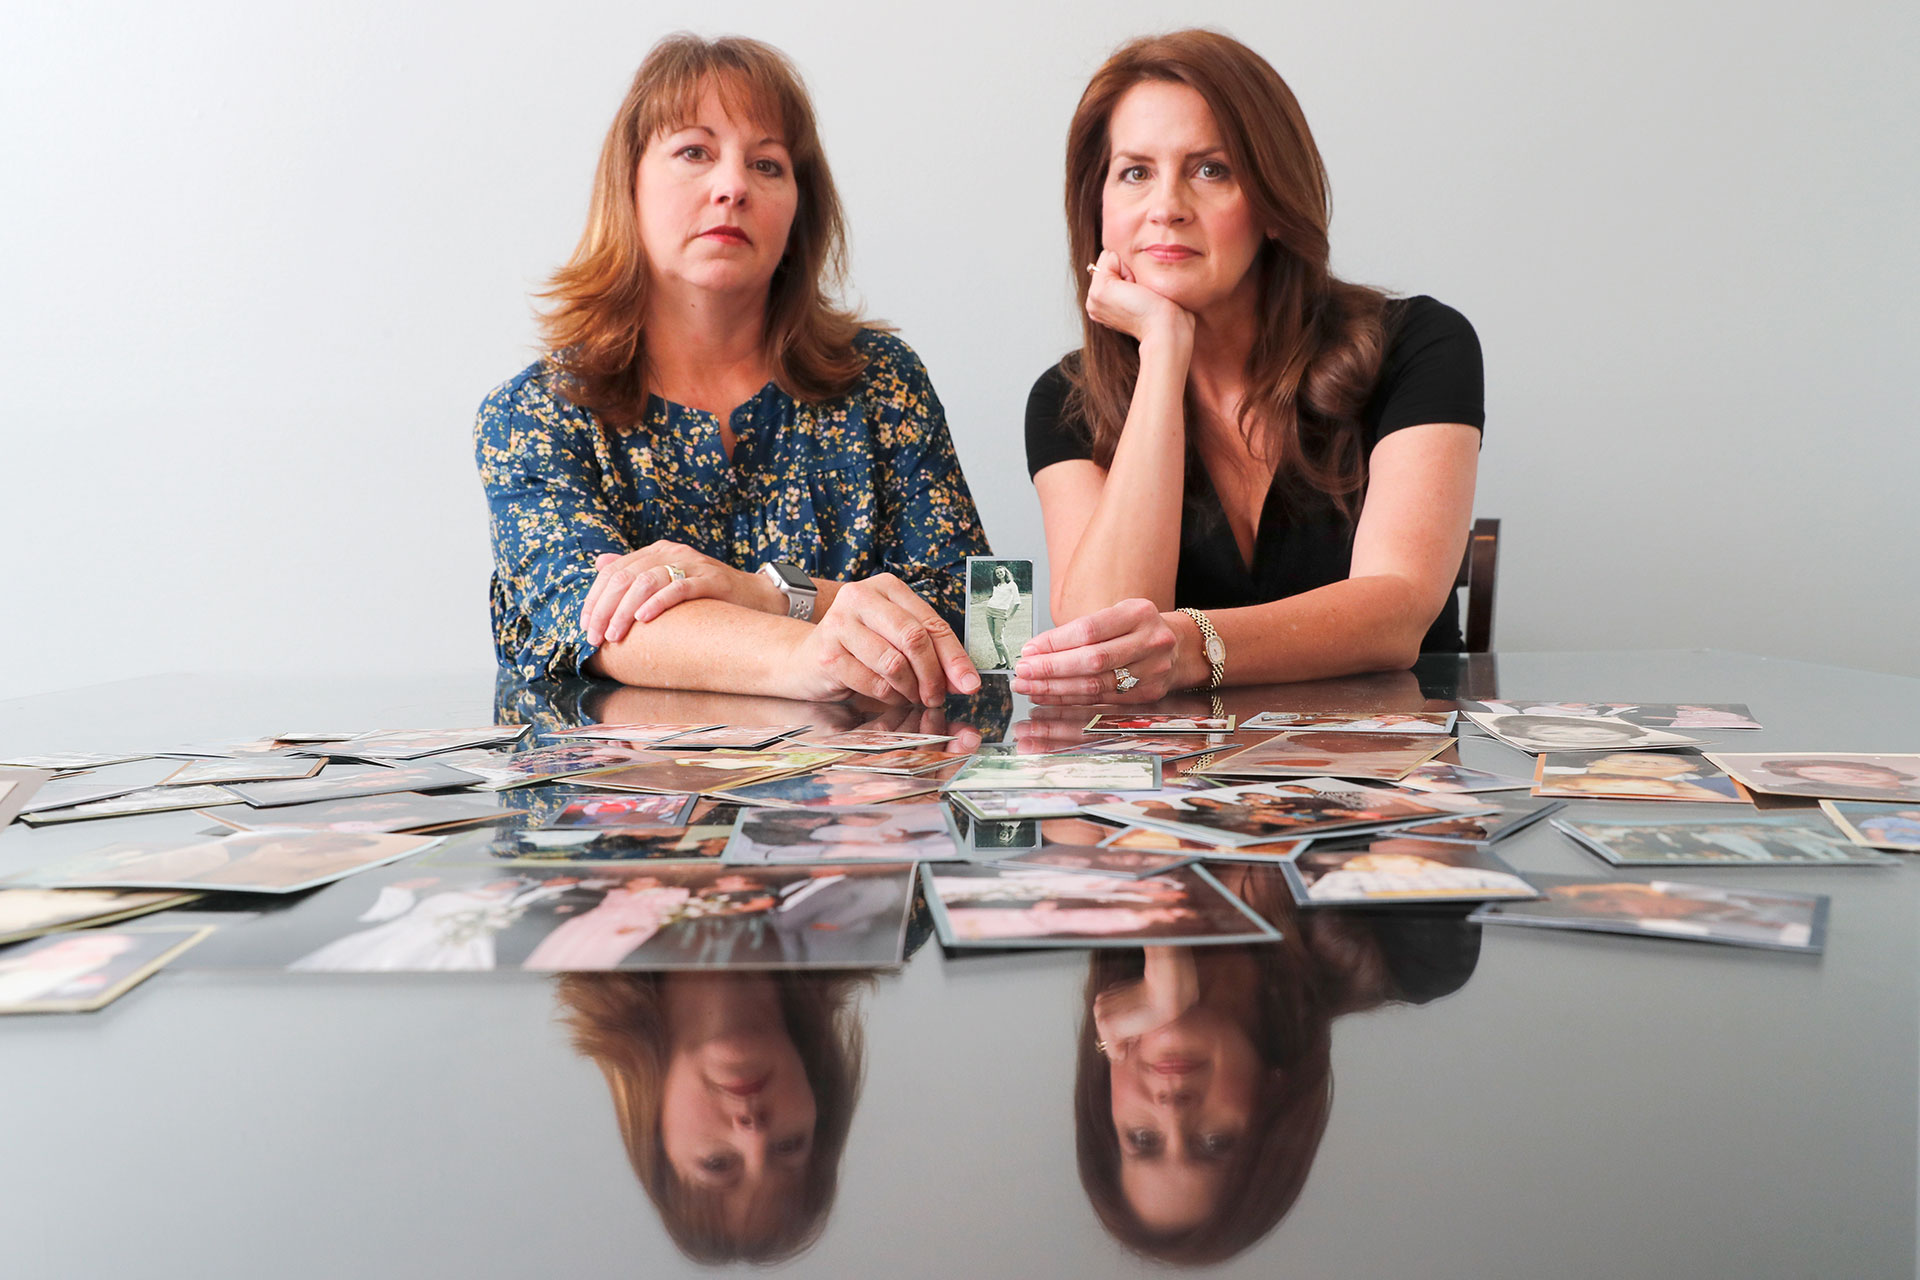 EARLY INDICATION: Cady Evans (left) and her sister, Crystal Deckard, surrounded by pictures of their mother, Darlene Coker, whose lawsuit against Johnson & Johnson 20 years ago was one of the first to allege that the company's Baby Powder caused cancer. REUTERS/Mike Blake